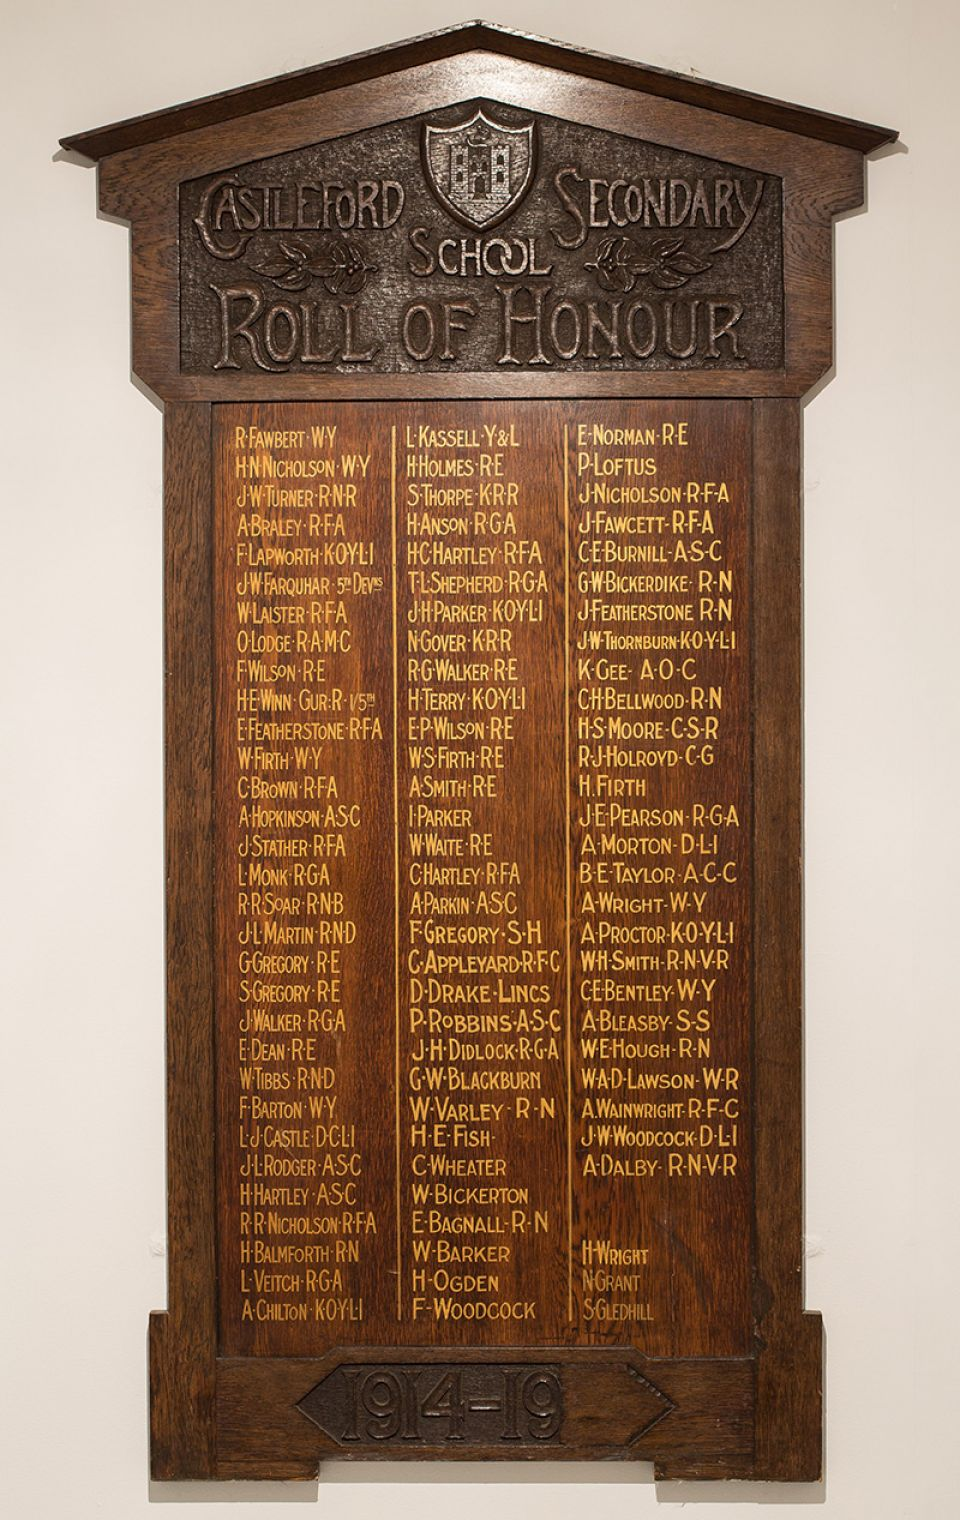 Henry Moore, Castleford Secondary School Roll of Honour